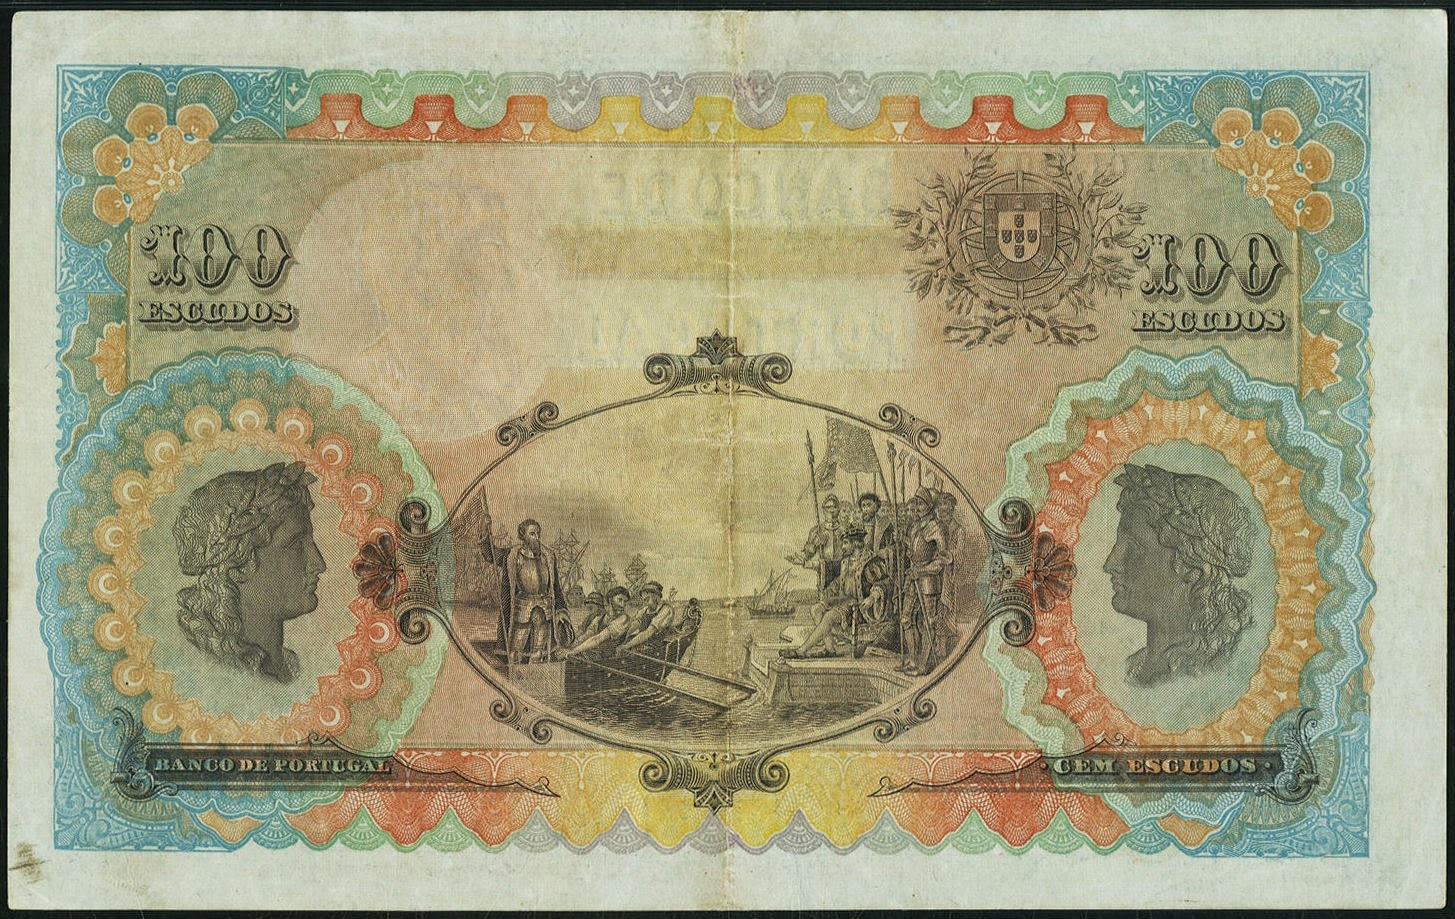 old money Portugal 100 Escudos bank note 1920 Pedro Alvares Cabral and the Discovery of Brazil